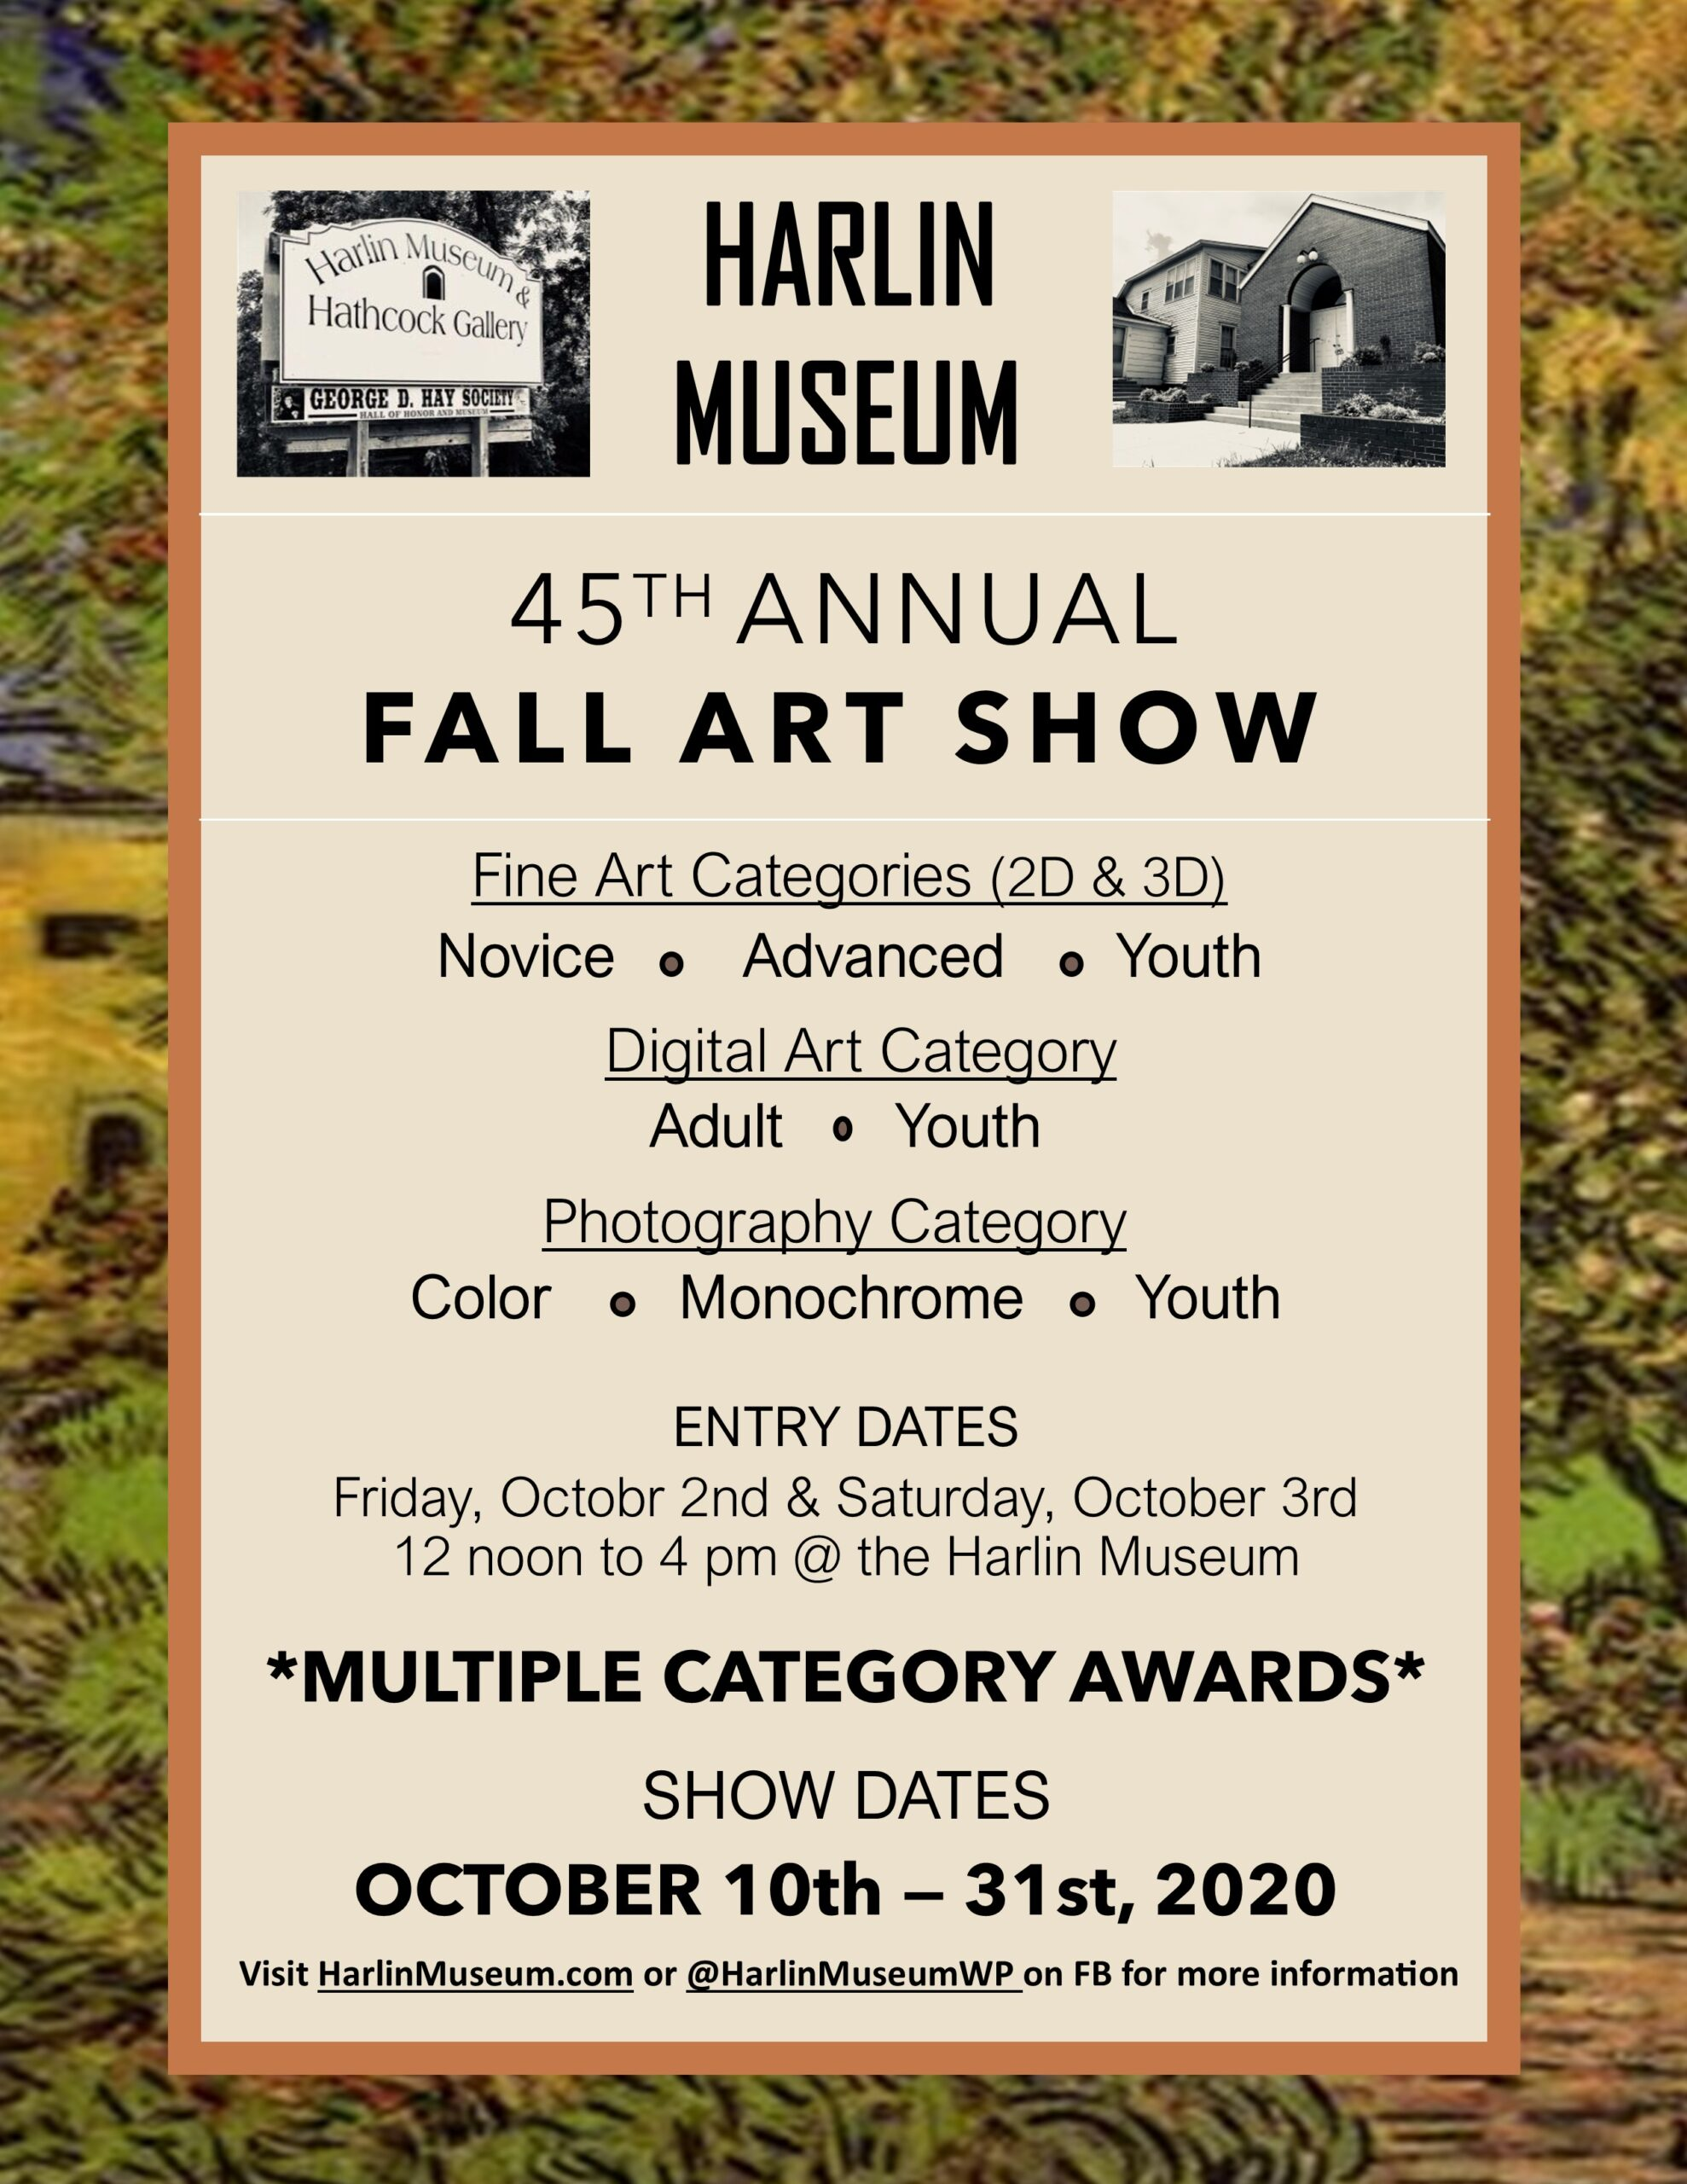 Harlin Museum 45th Annual Fall Art Show @ Harlin Museum